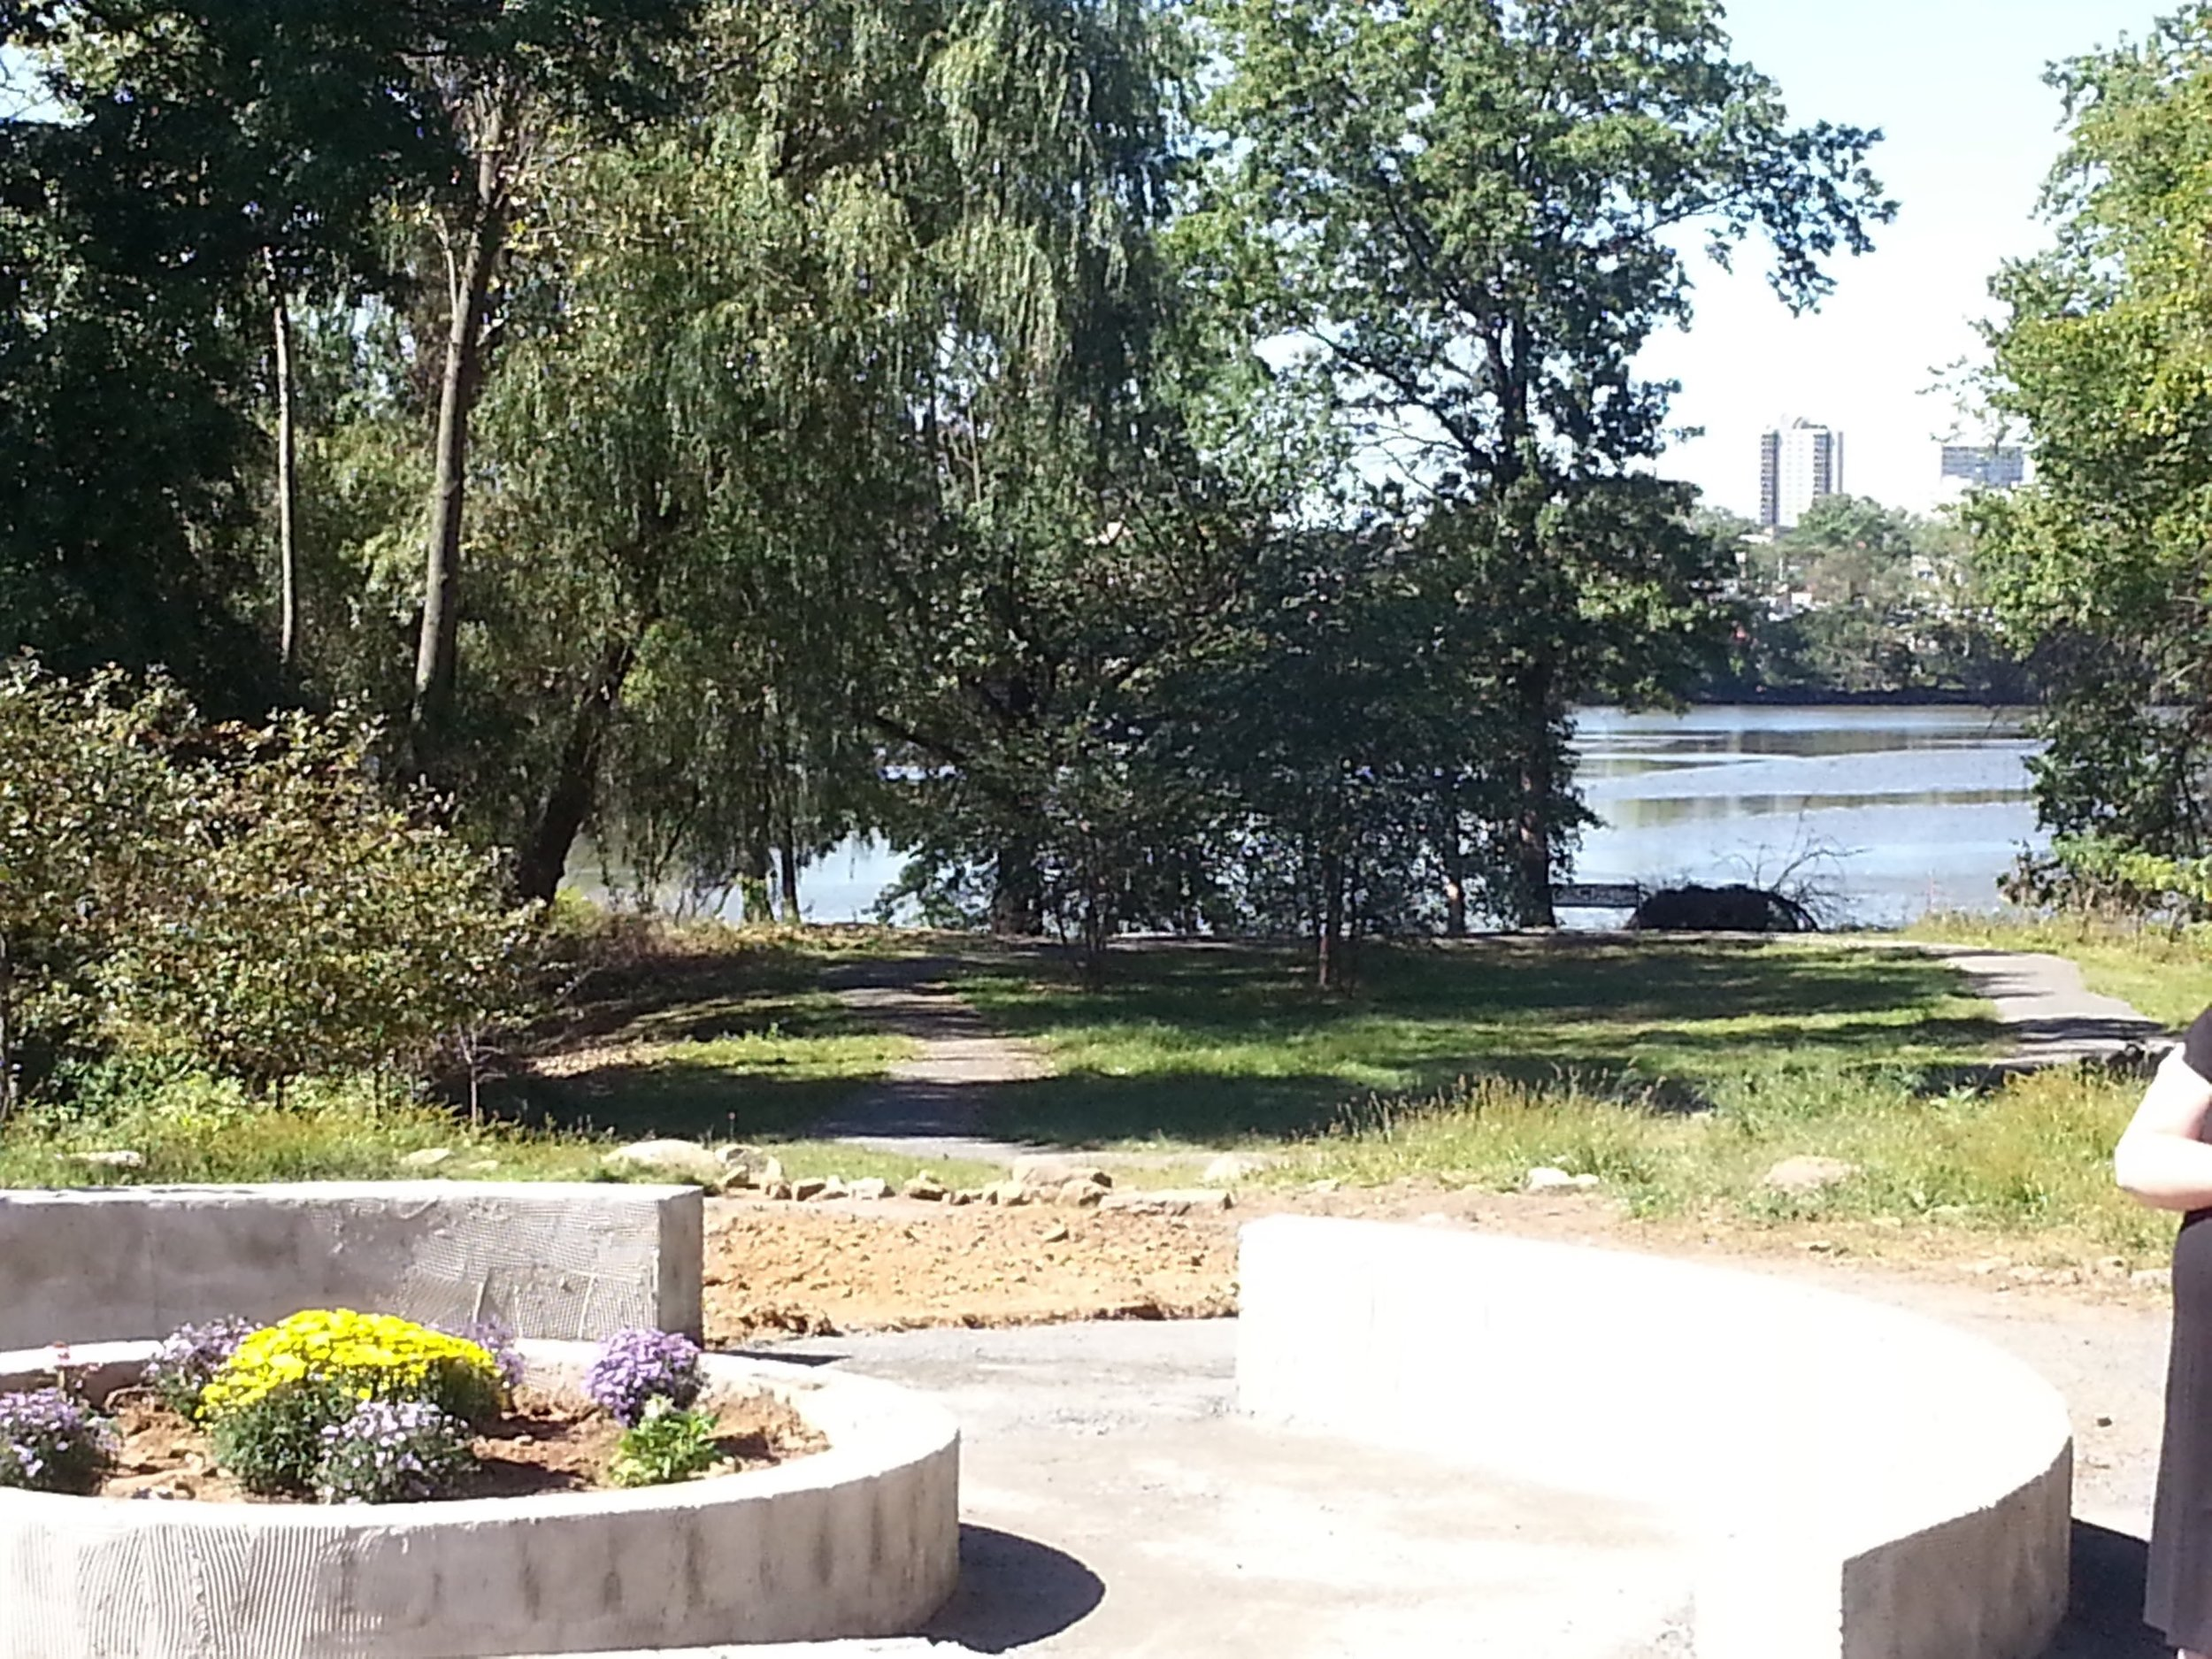 A view of the river from the sitting area